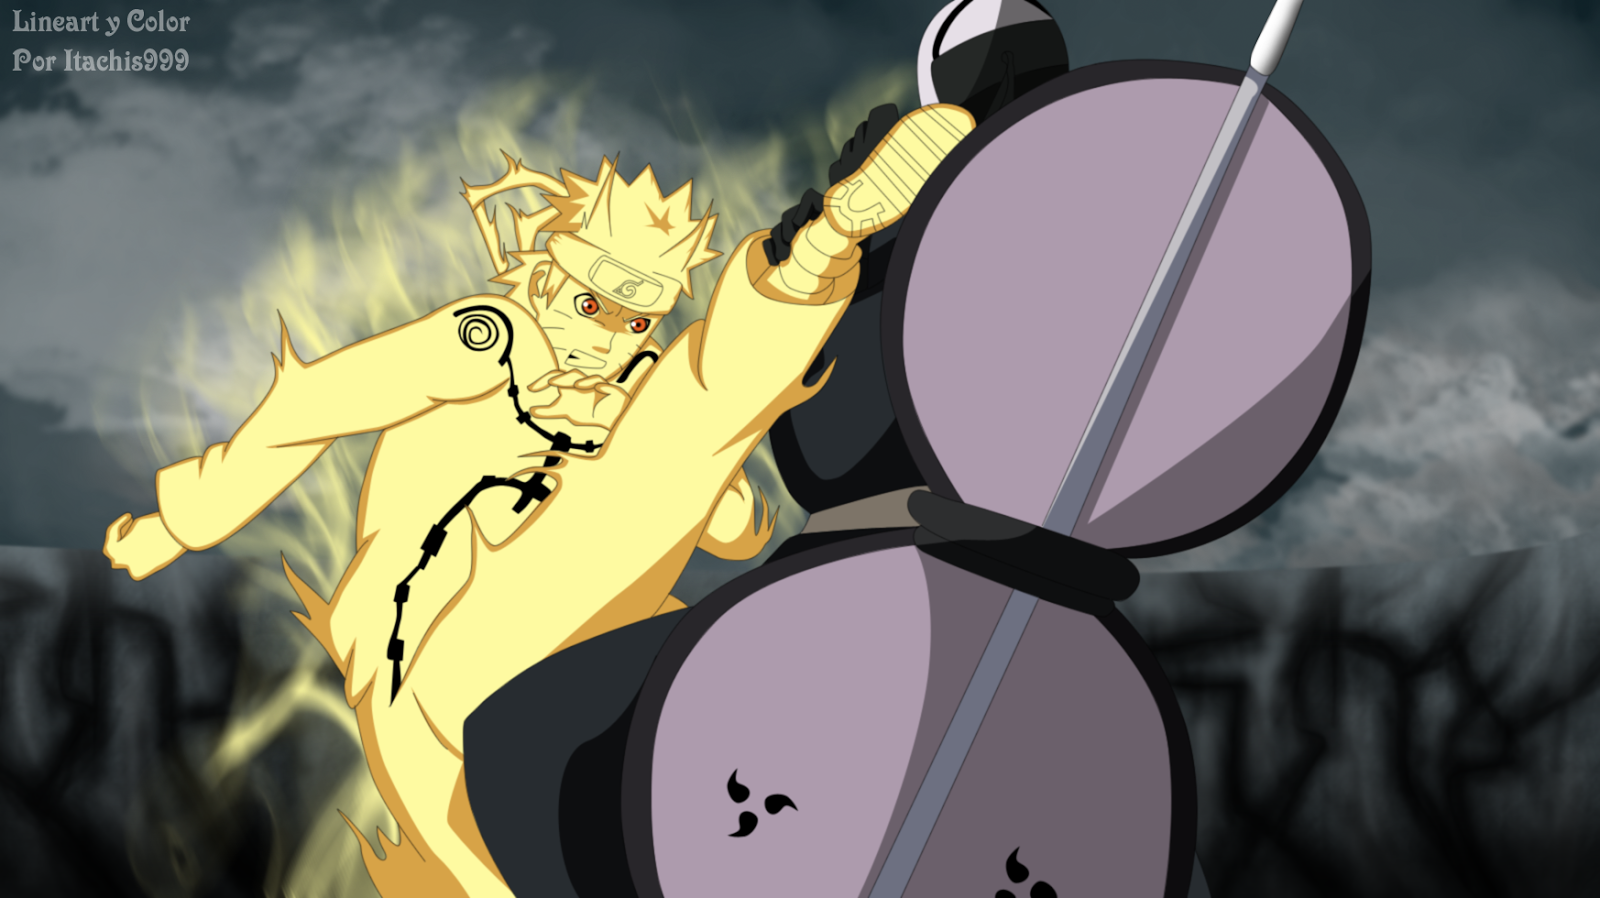 http://2.bp.blogspot.com/-FTCWOi3pO4Y/TtX817eWVcI/AAAAAAAABx8/T1PUwn8V318/s1600/naruto_vs_tobi_madara_2_by_itachis999.png